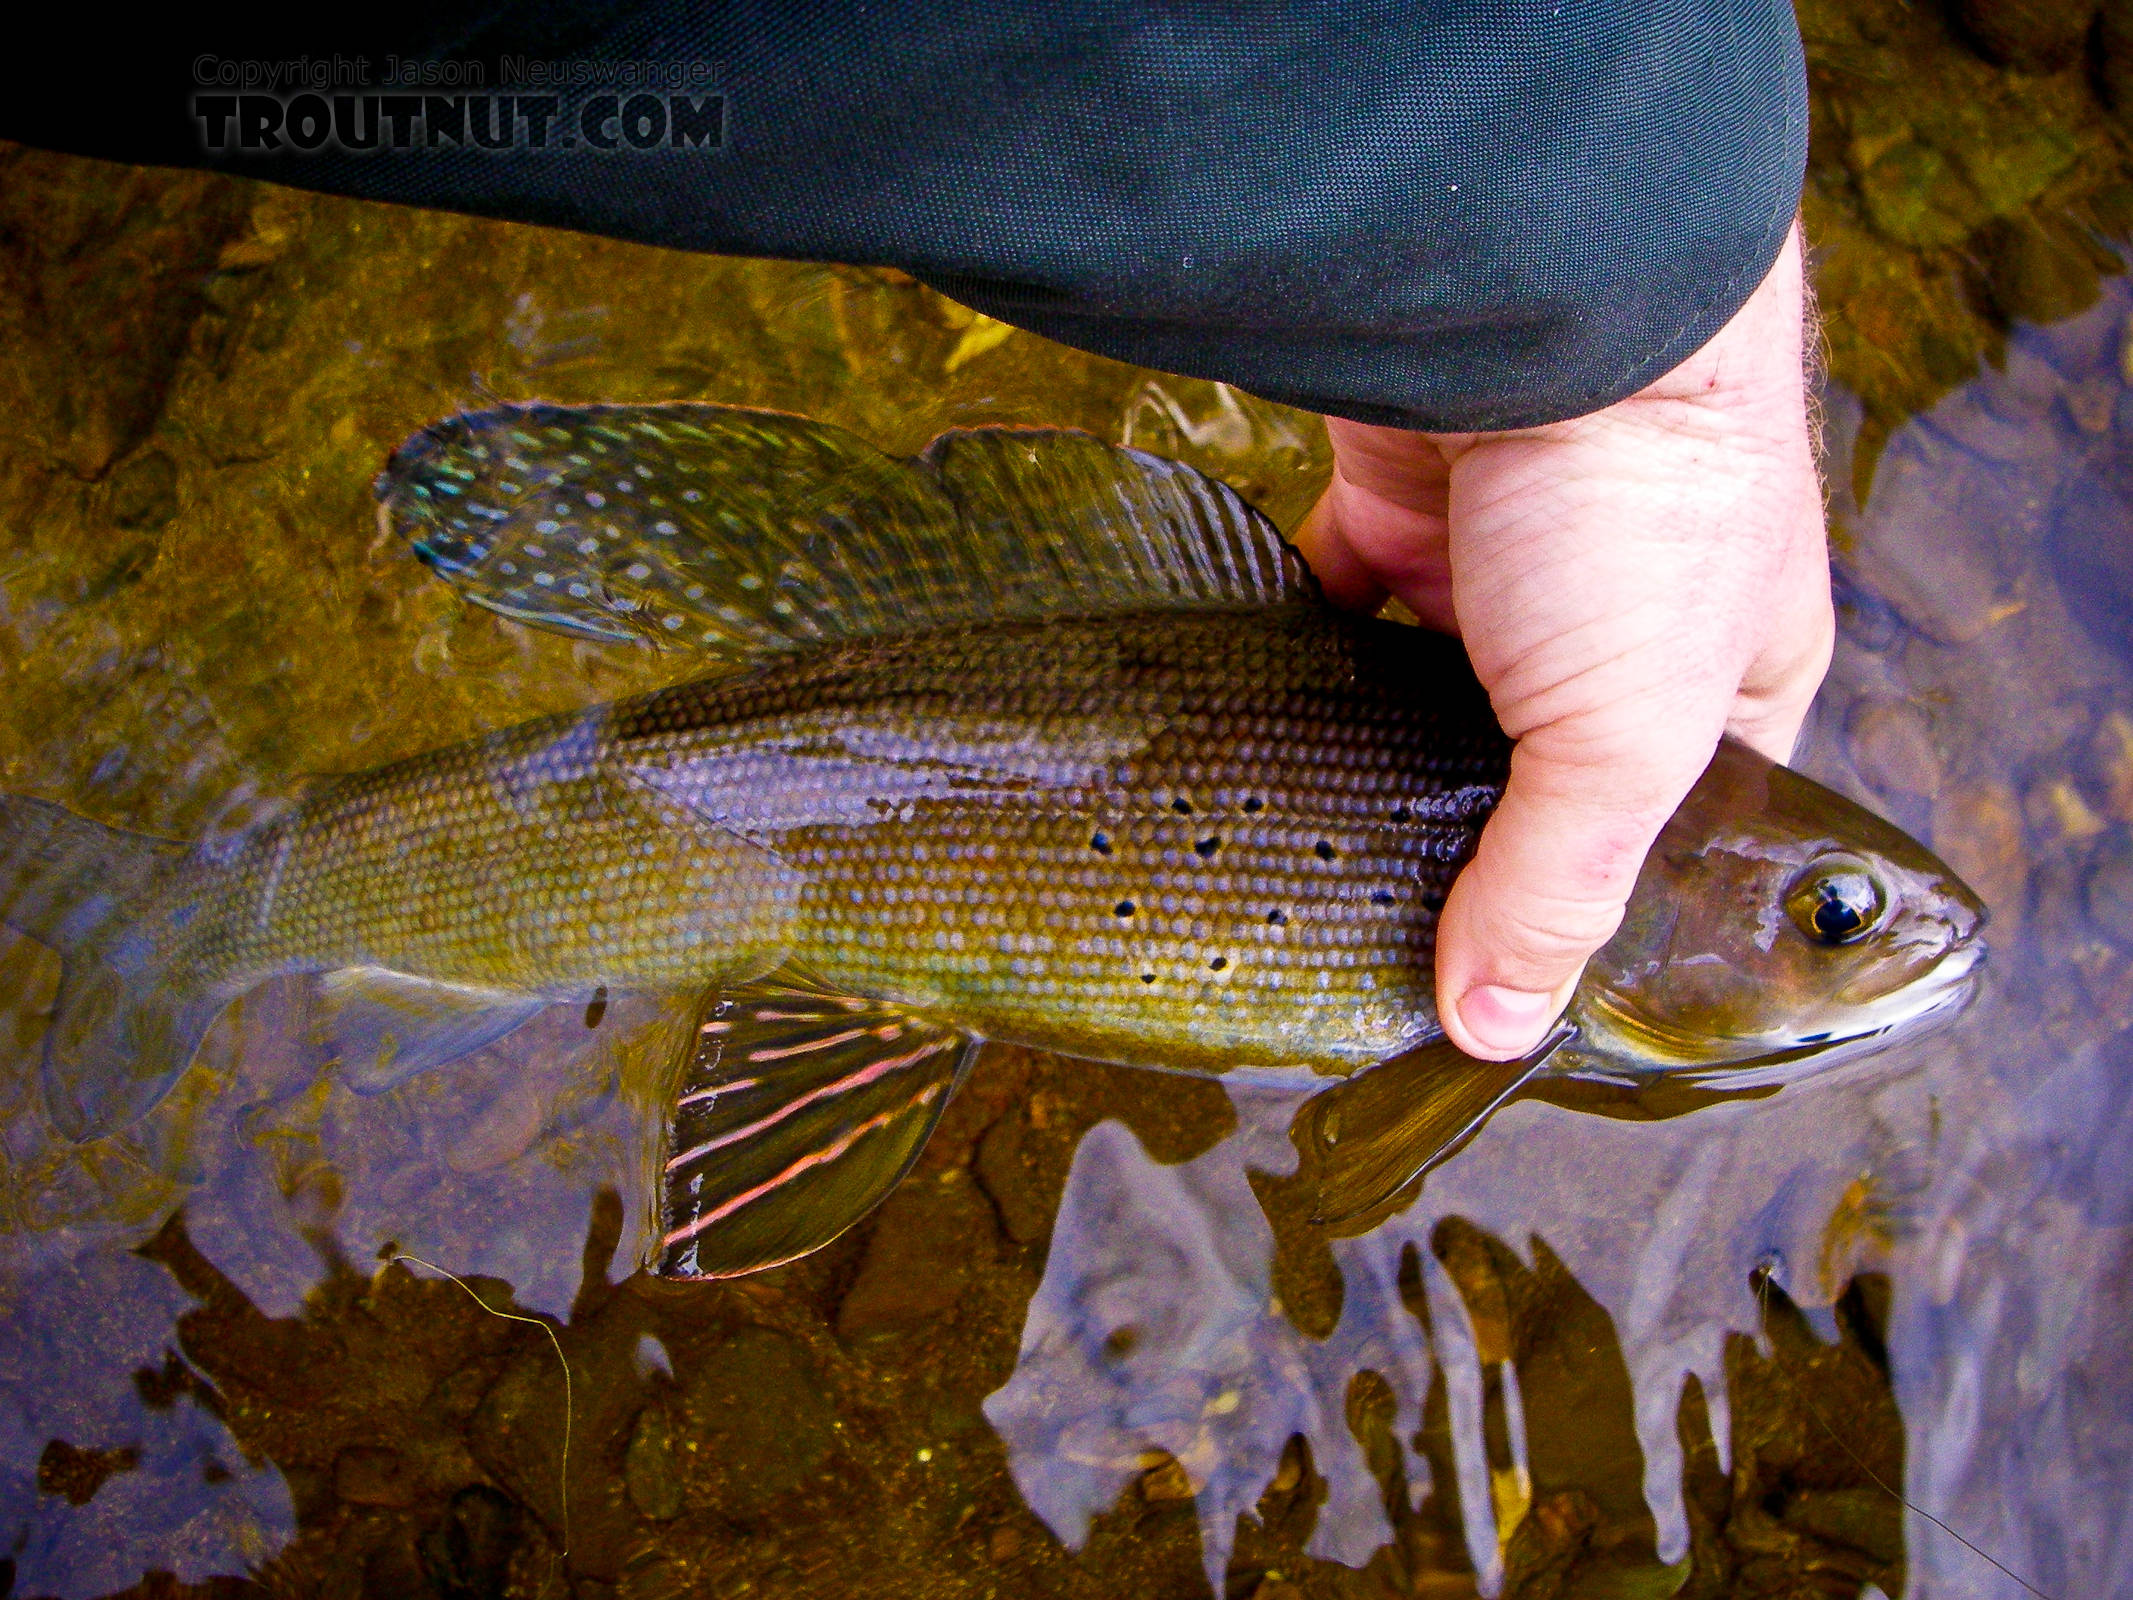 It's hard to capture the full beauty of a well-colored arctic grayling in a photo that can't show its iridescence.  This one was just so colorful he pretty much made up for it. From Fish Creek in Alaska.